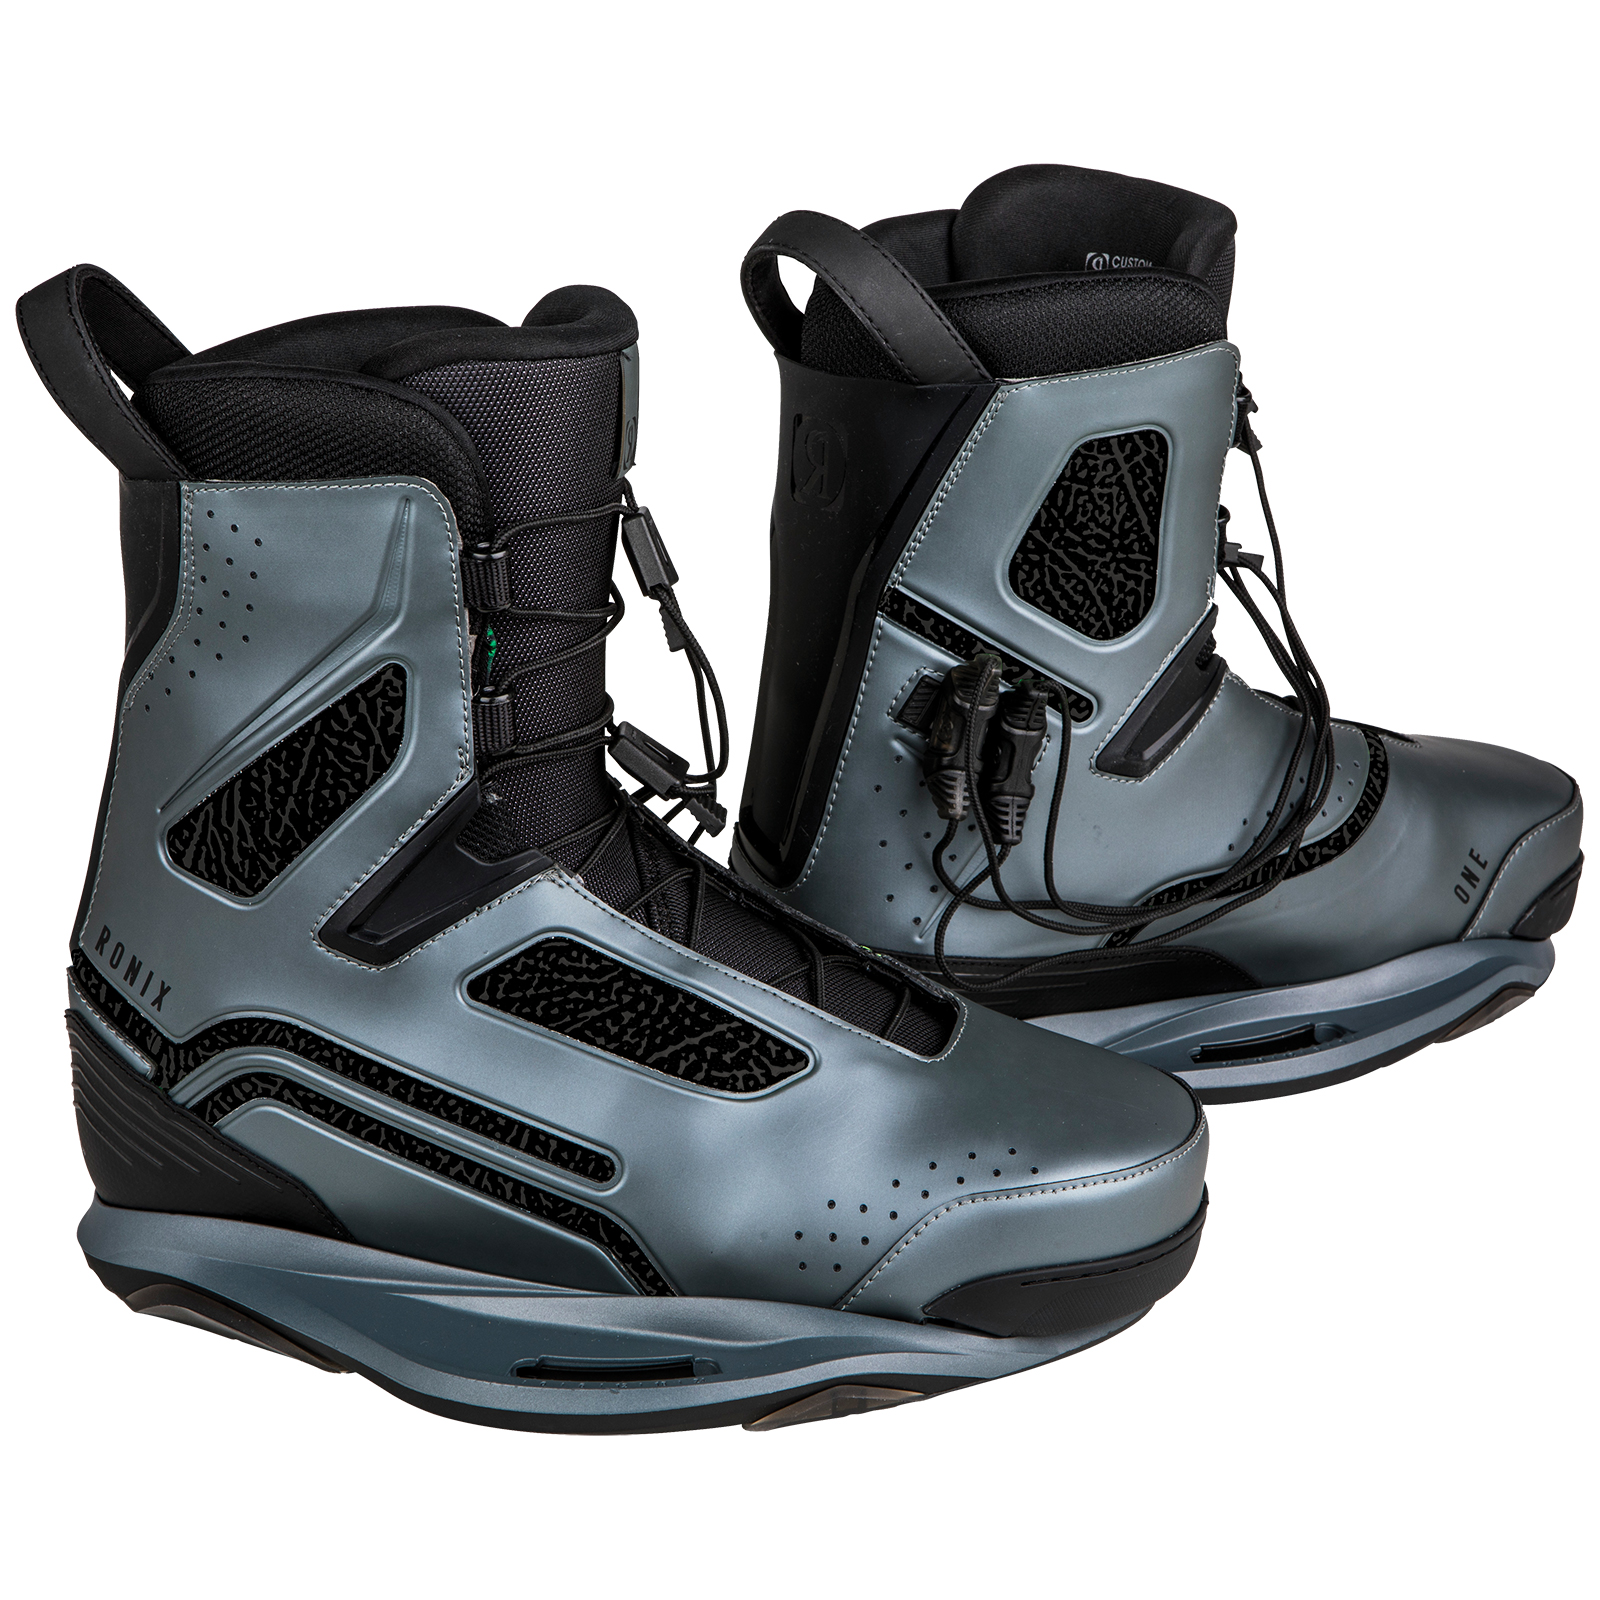 ONE INTUITION - SPACE CRAFT GREY BOOT RONIX 2019